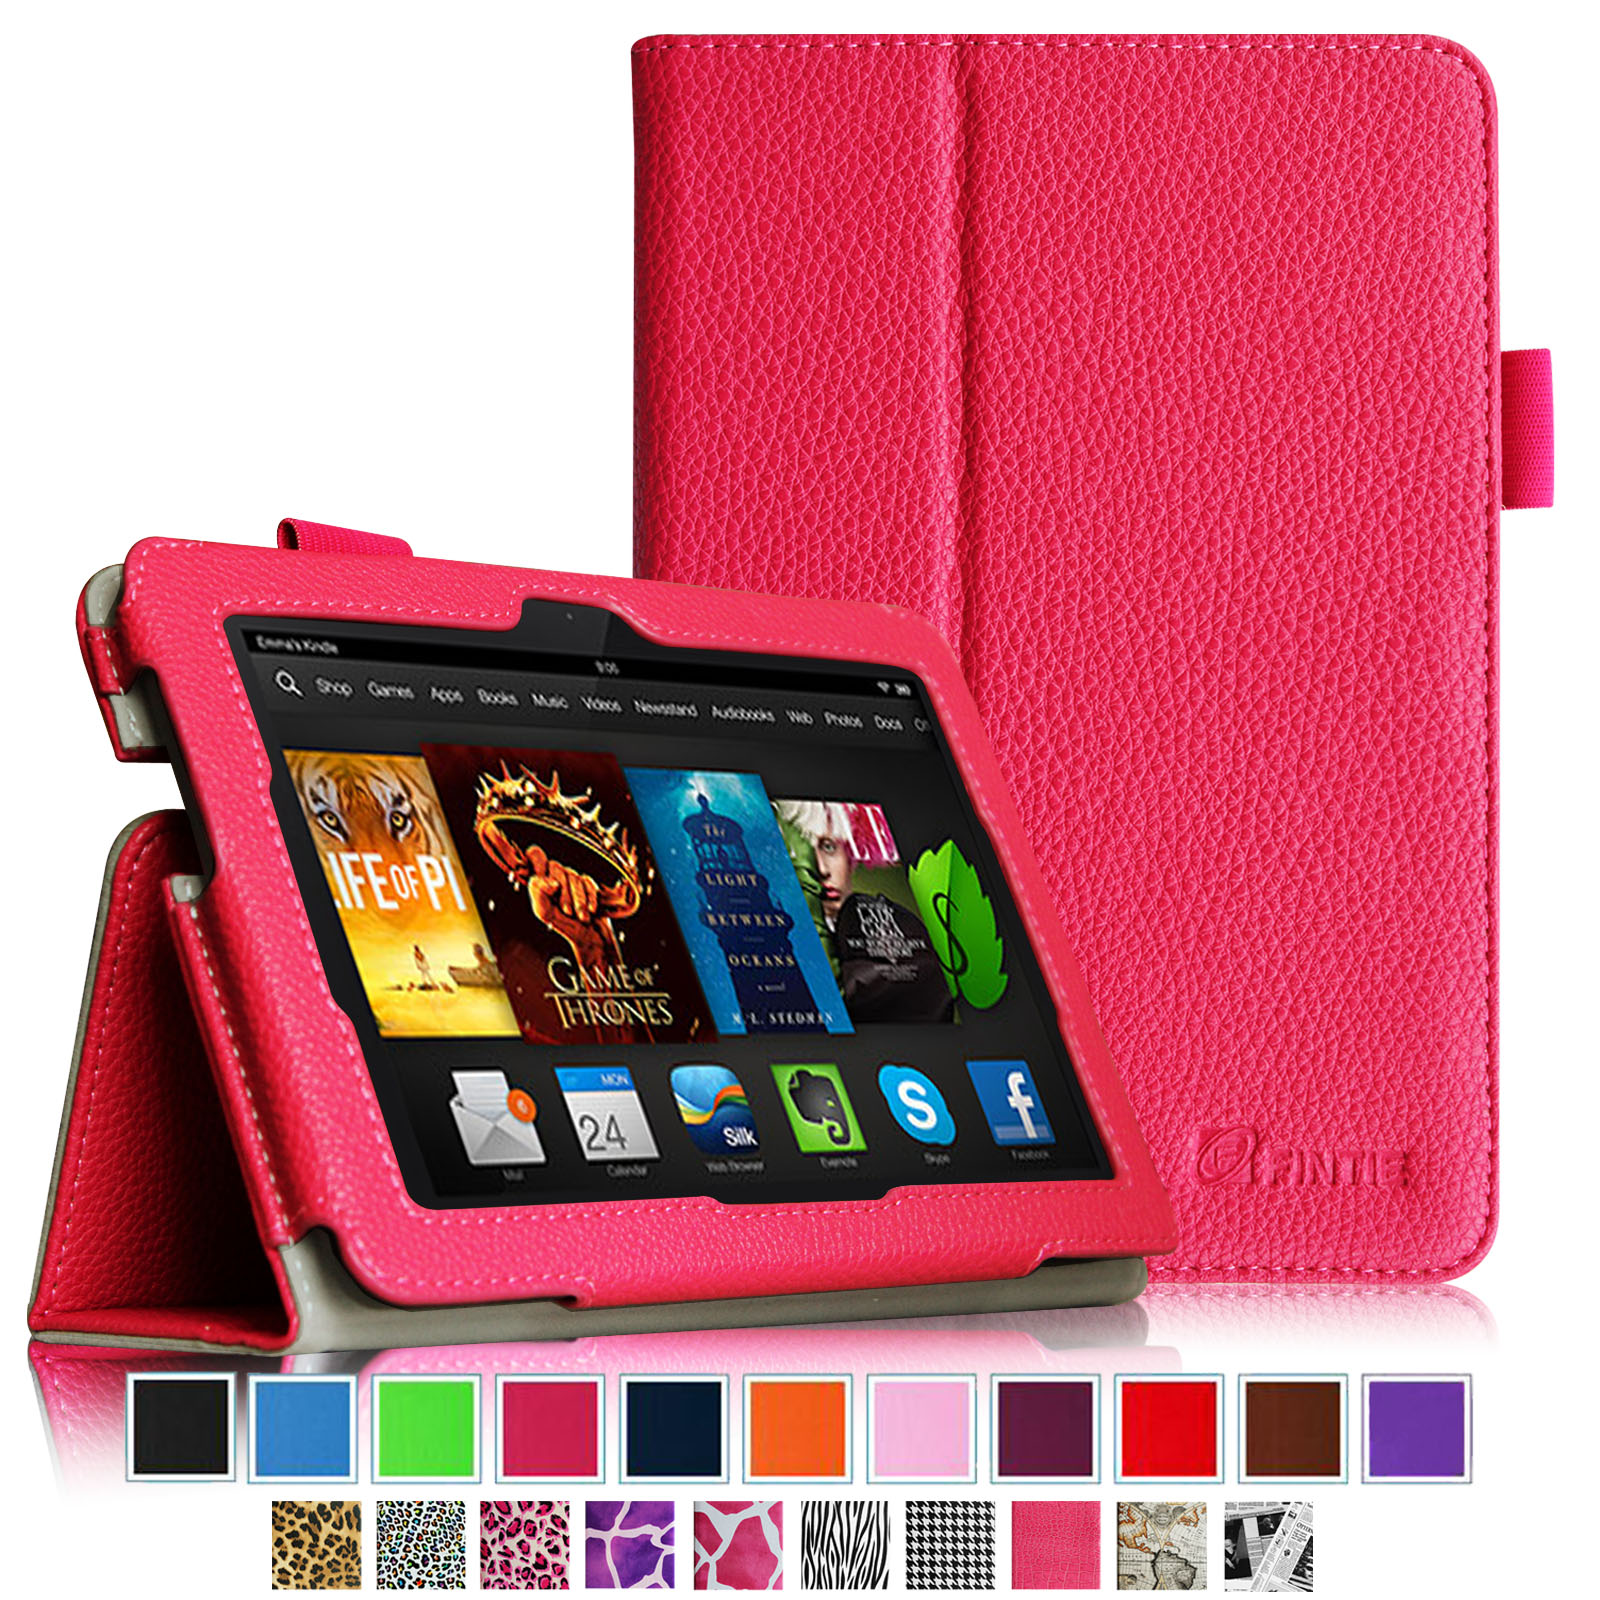 "Fintie Kindle Fire HDX 7 Folio Case Cover - Auto Sleep/Wake (will only fit Kindle Fire HDX 7"" 2013), Magenta"